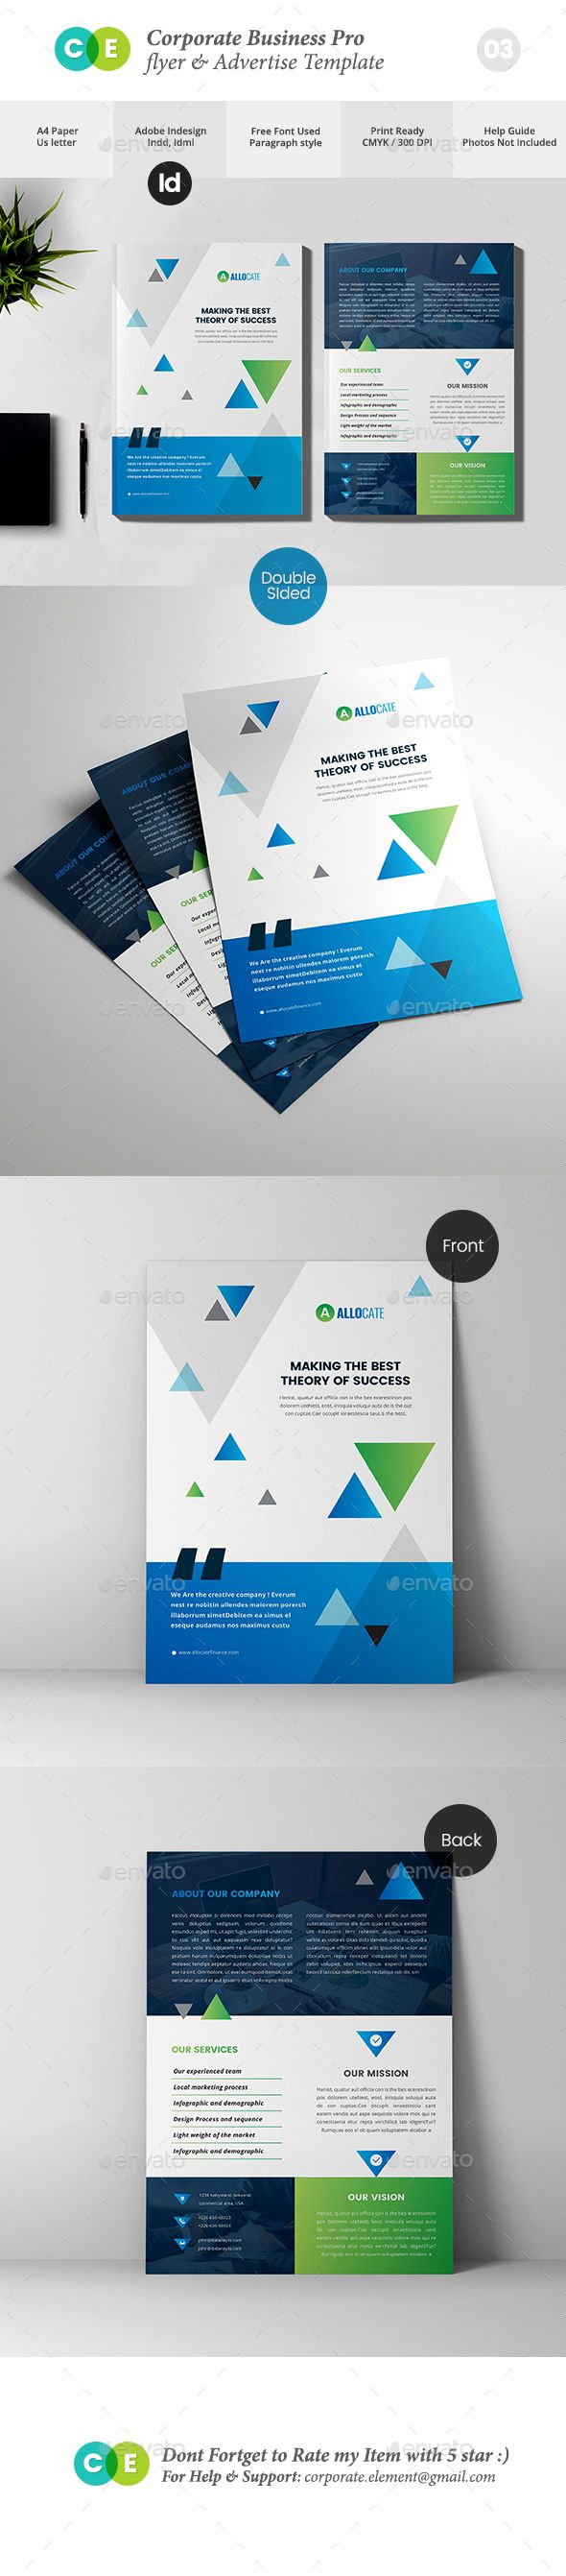 Corporate Business Pro Double Sided Flyer Template InDesign INDD